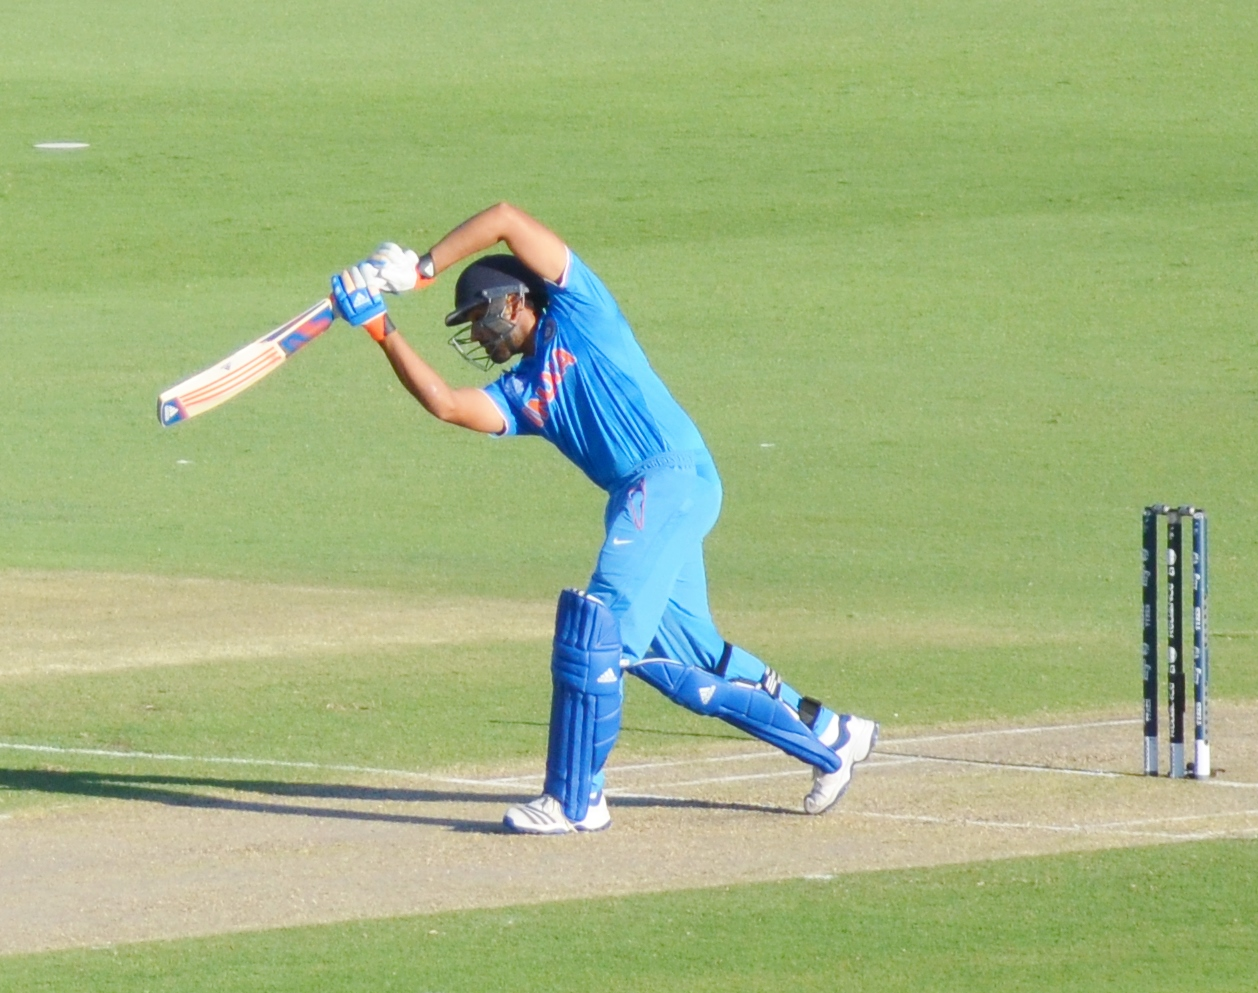 Twitter reactions on Rohit Sharma and Shikhar Dhawan's centuries